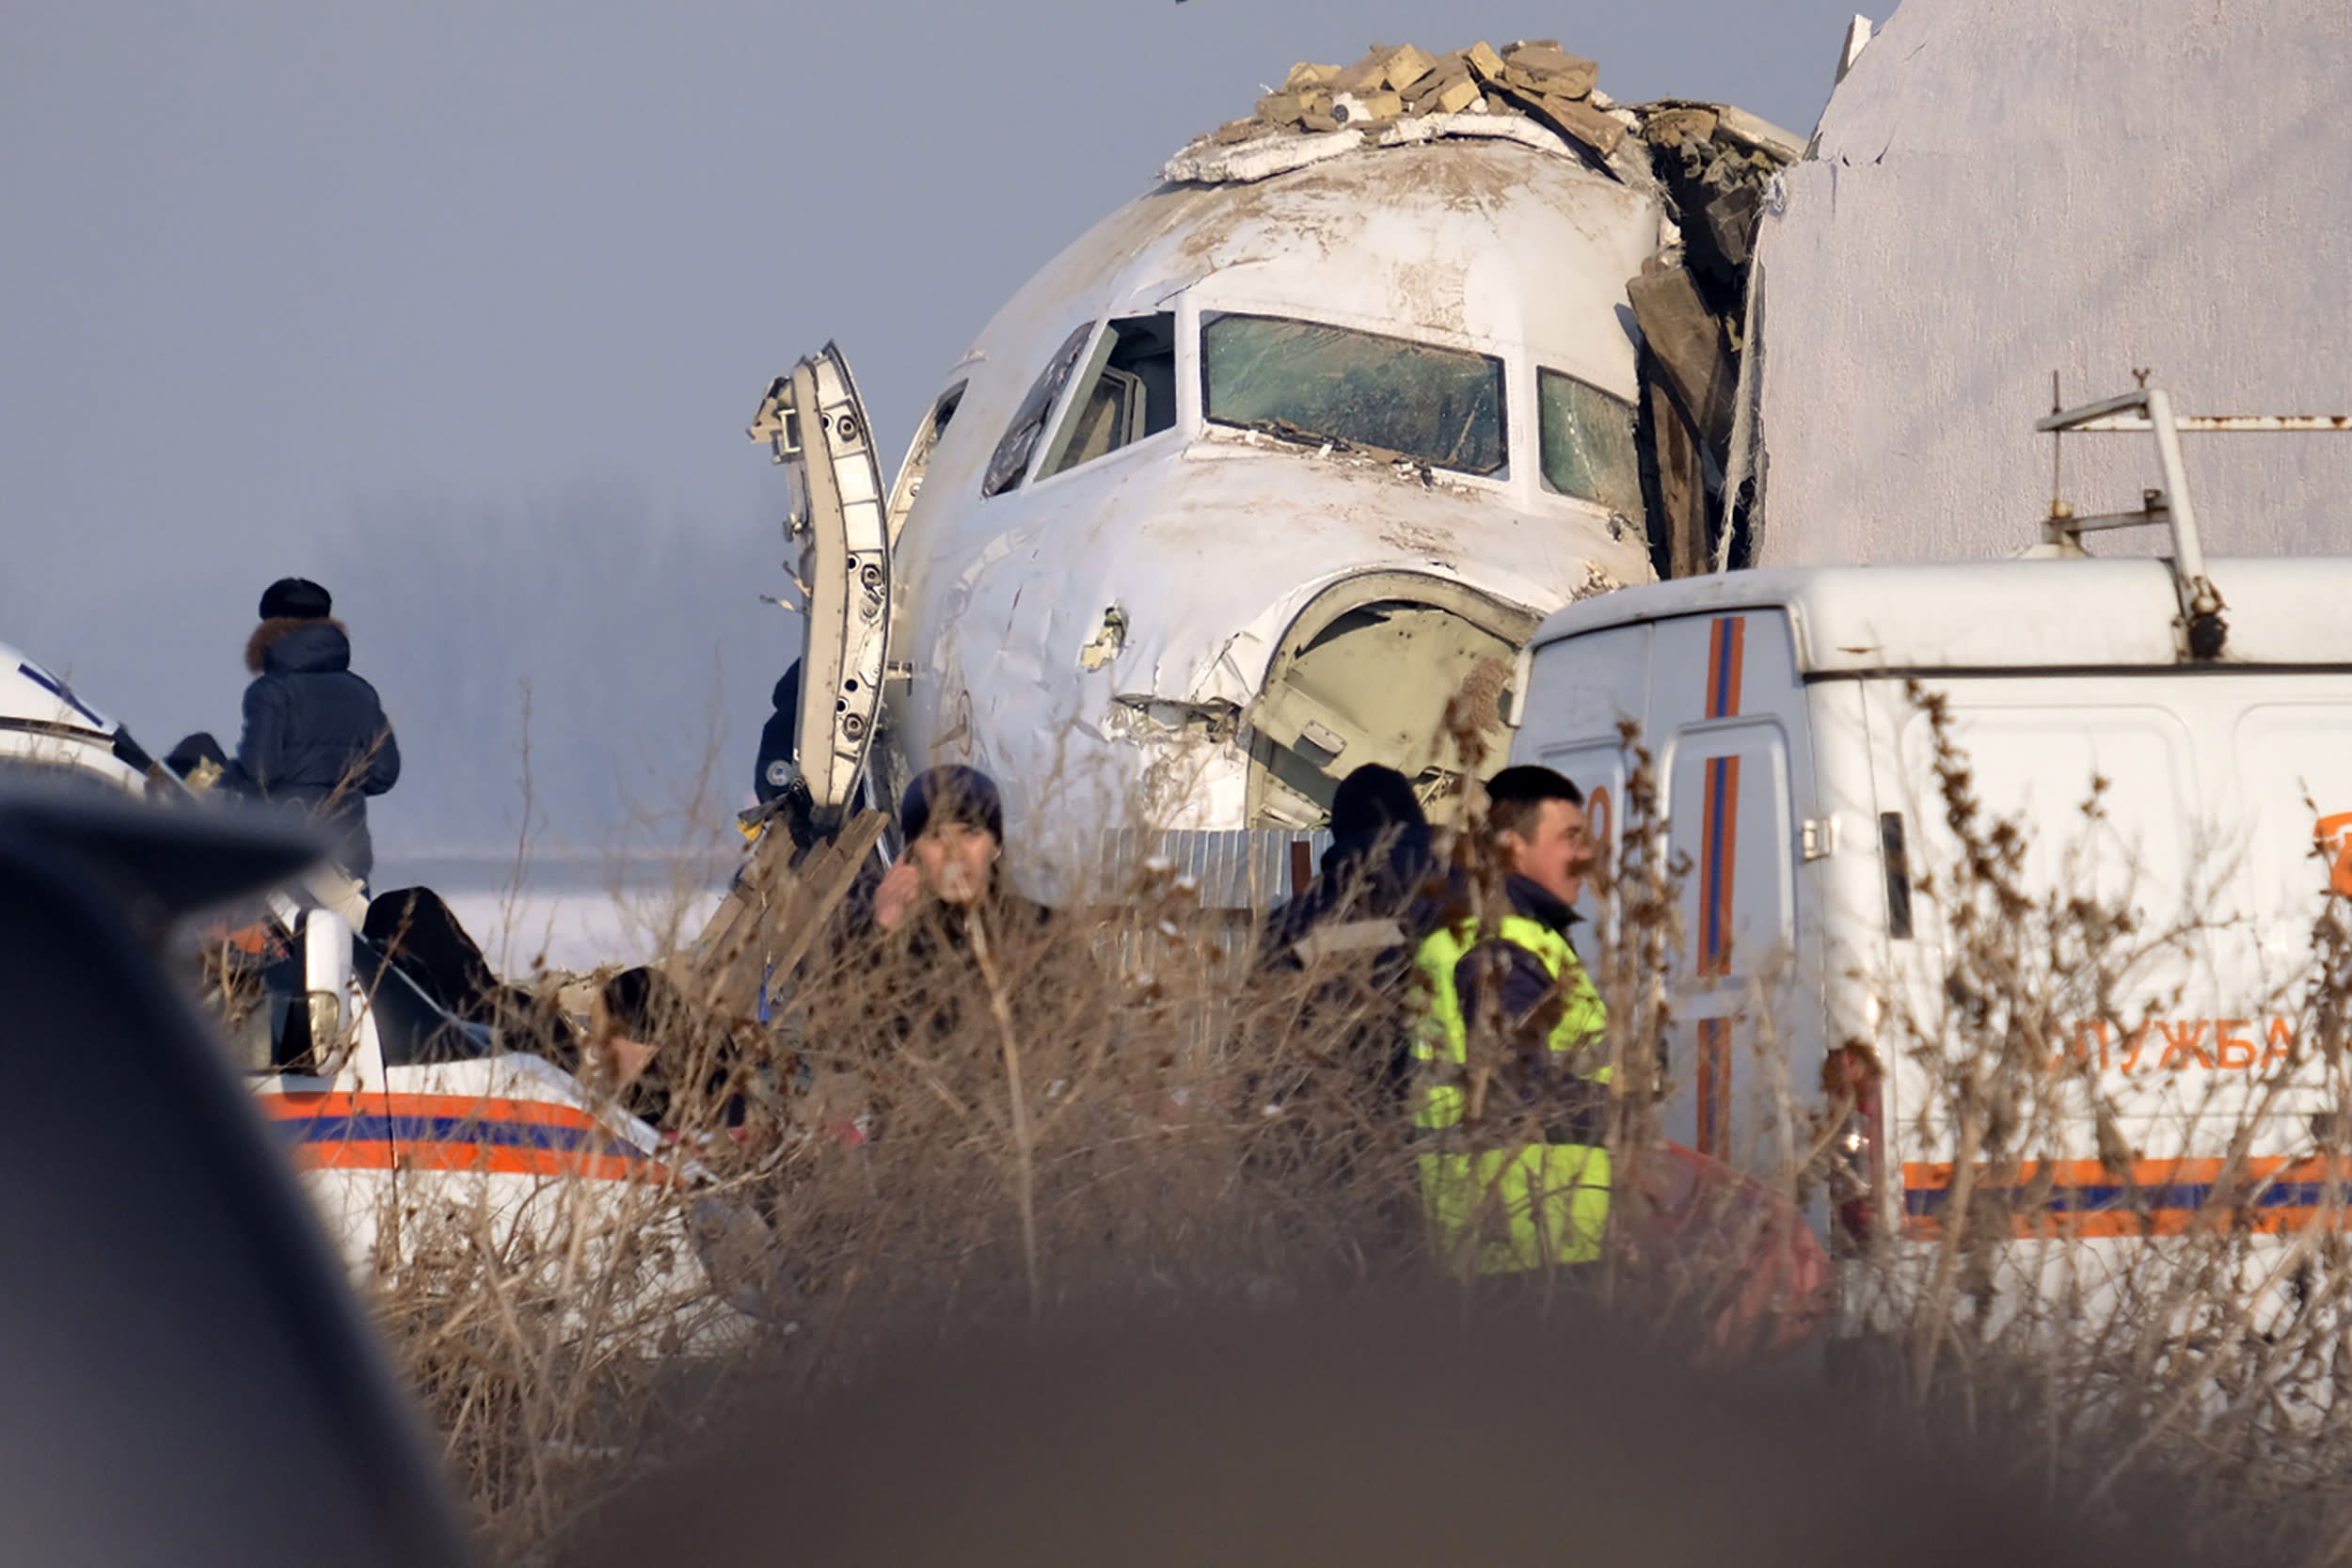 Police stand guard as rescuers assist on the site of a plane crashed near Almaty International Airport, outside Almaty, Kazakhstan, Friday, Dec. 27, 2019. The Kazakhstan plane with 98 people aboard crashed shortly after takeoff early Friday. (AP Photo/Vladimir Tretyakov)